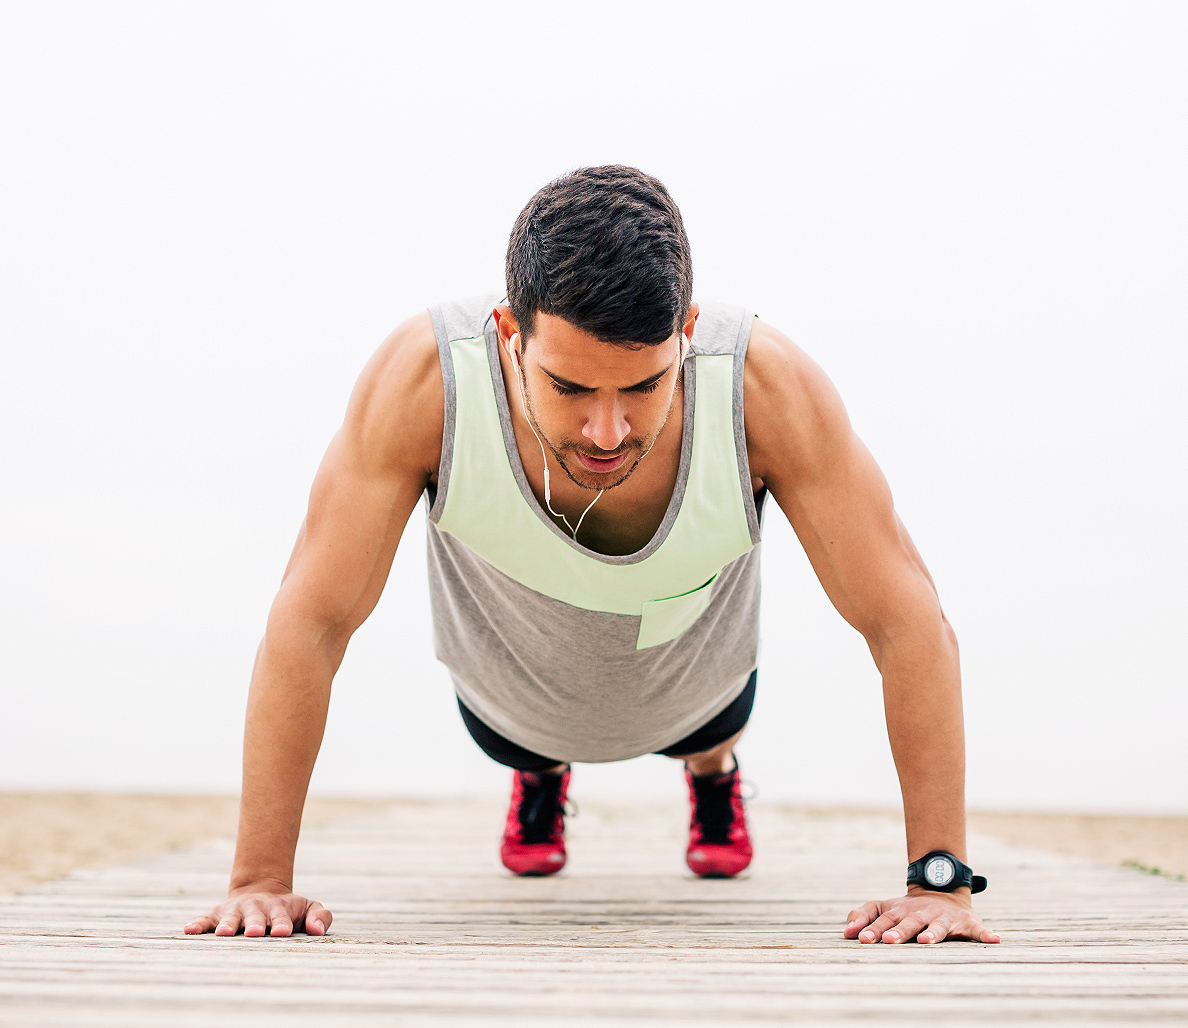 Chest Workouts - How Many Pushups Should I Do a Day? | SoPosted.com